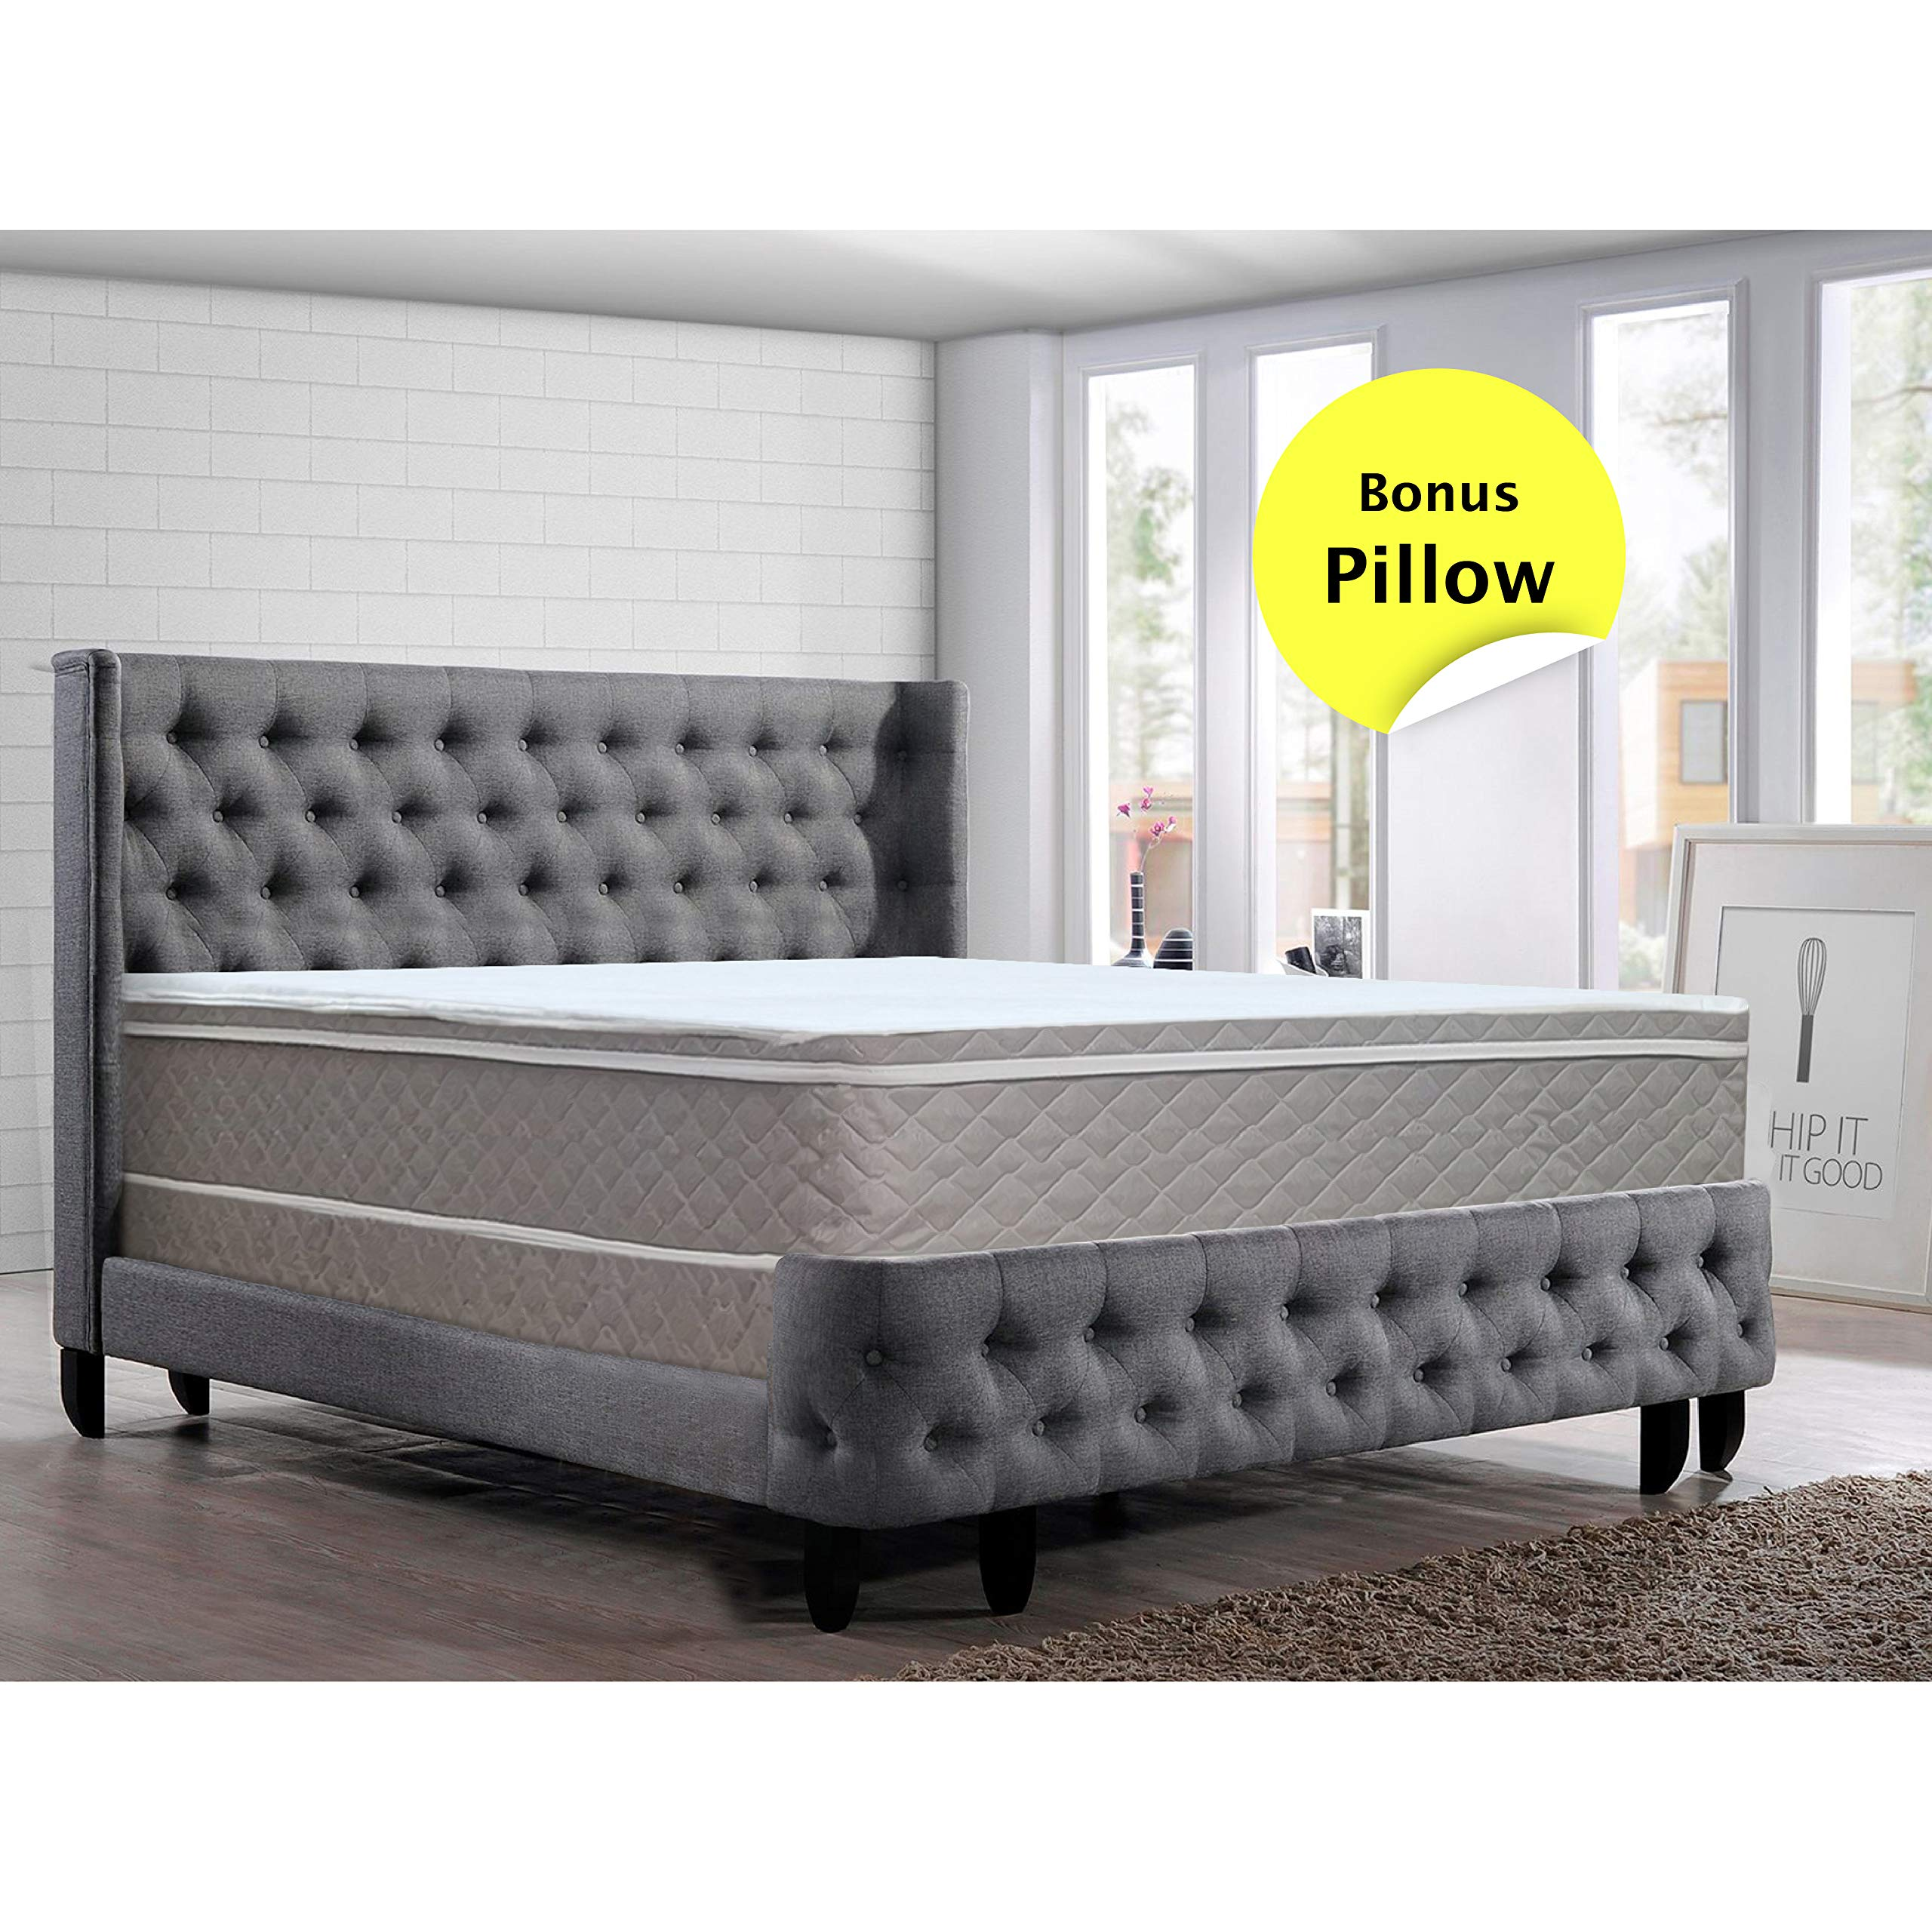 Greaton 10-Inch Wood Meduim Plush Eurotop Pillowtop Innerspring Mattress And 8-Inch Wood Box Spring/Foundation Set Queen Size by GREATON